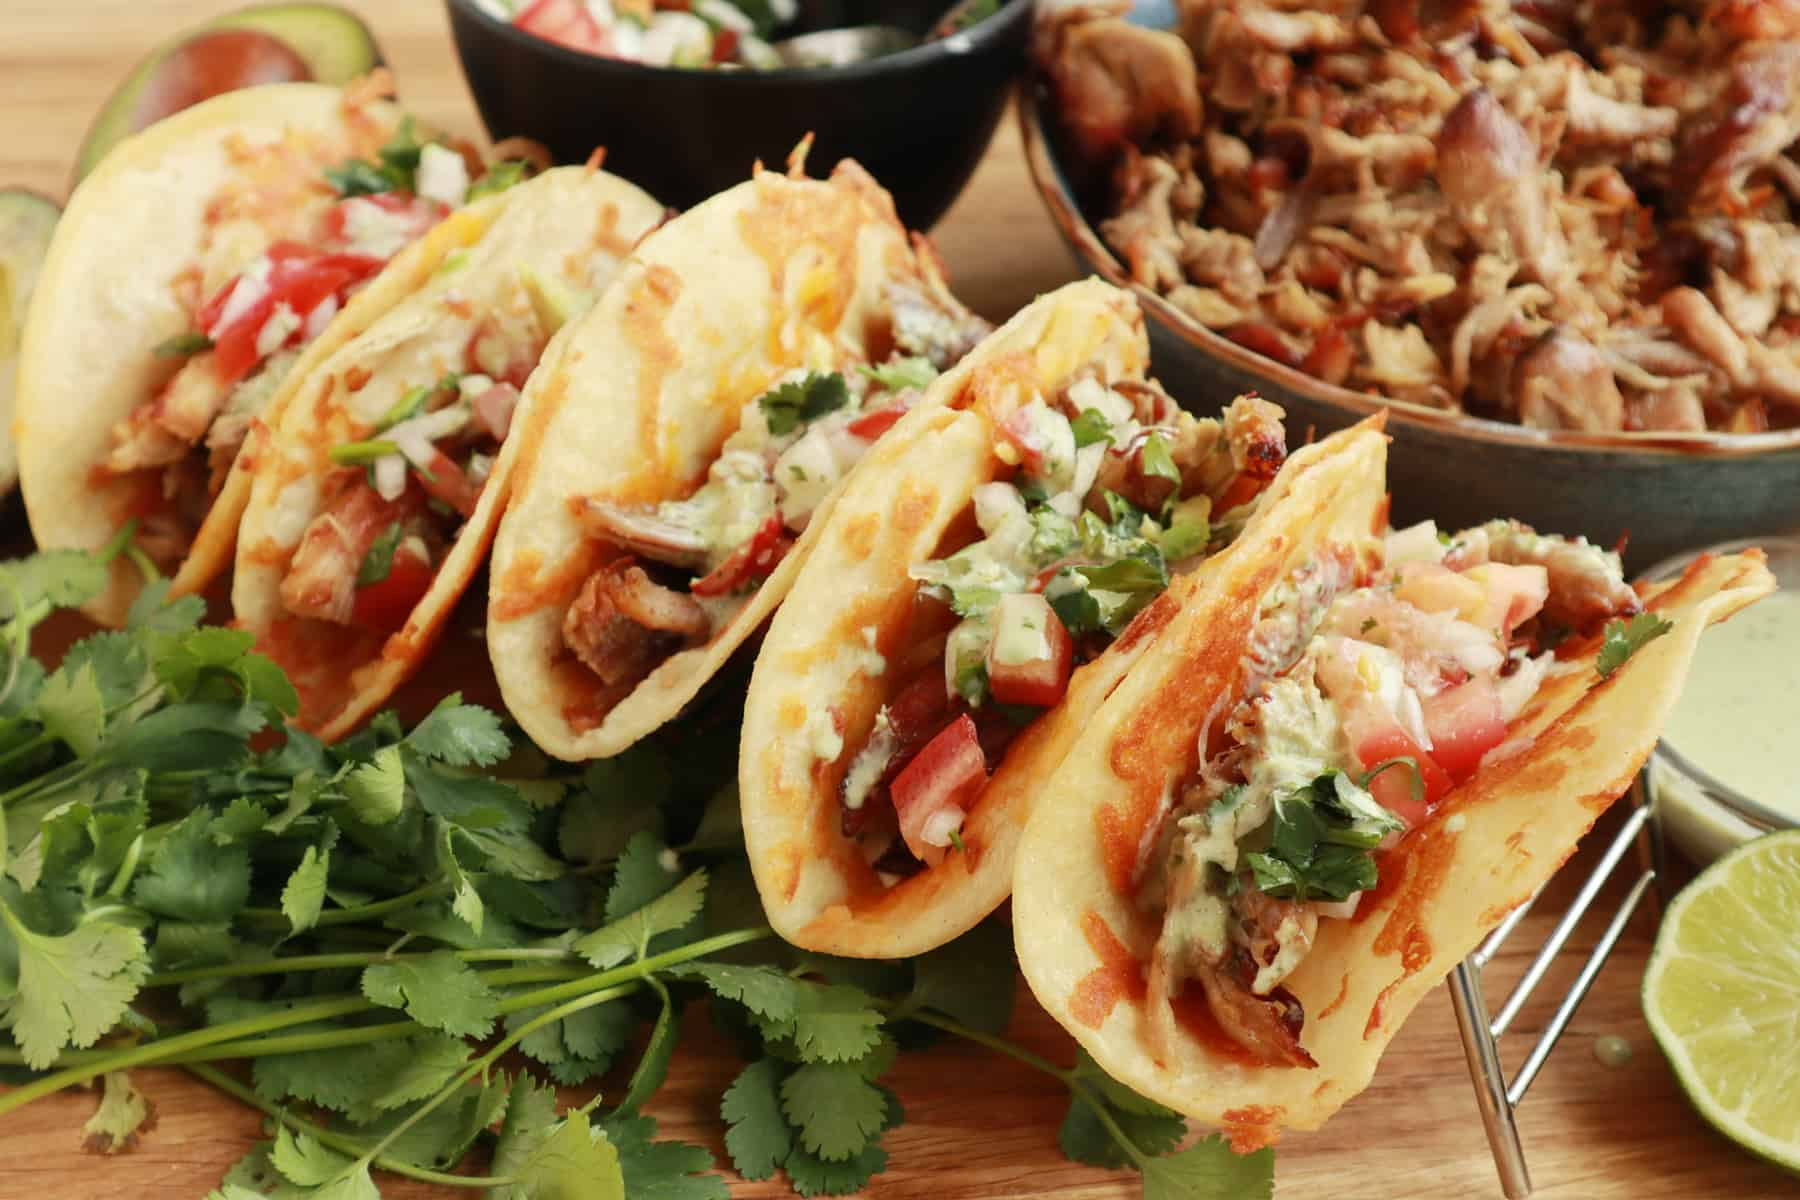 Tacos lined up and ready to serve on a table next to other ingredients for serving.